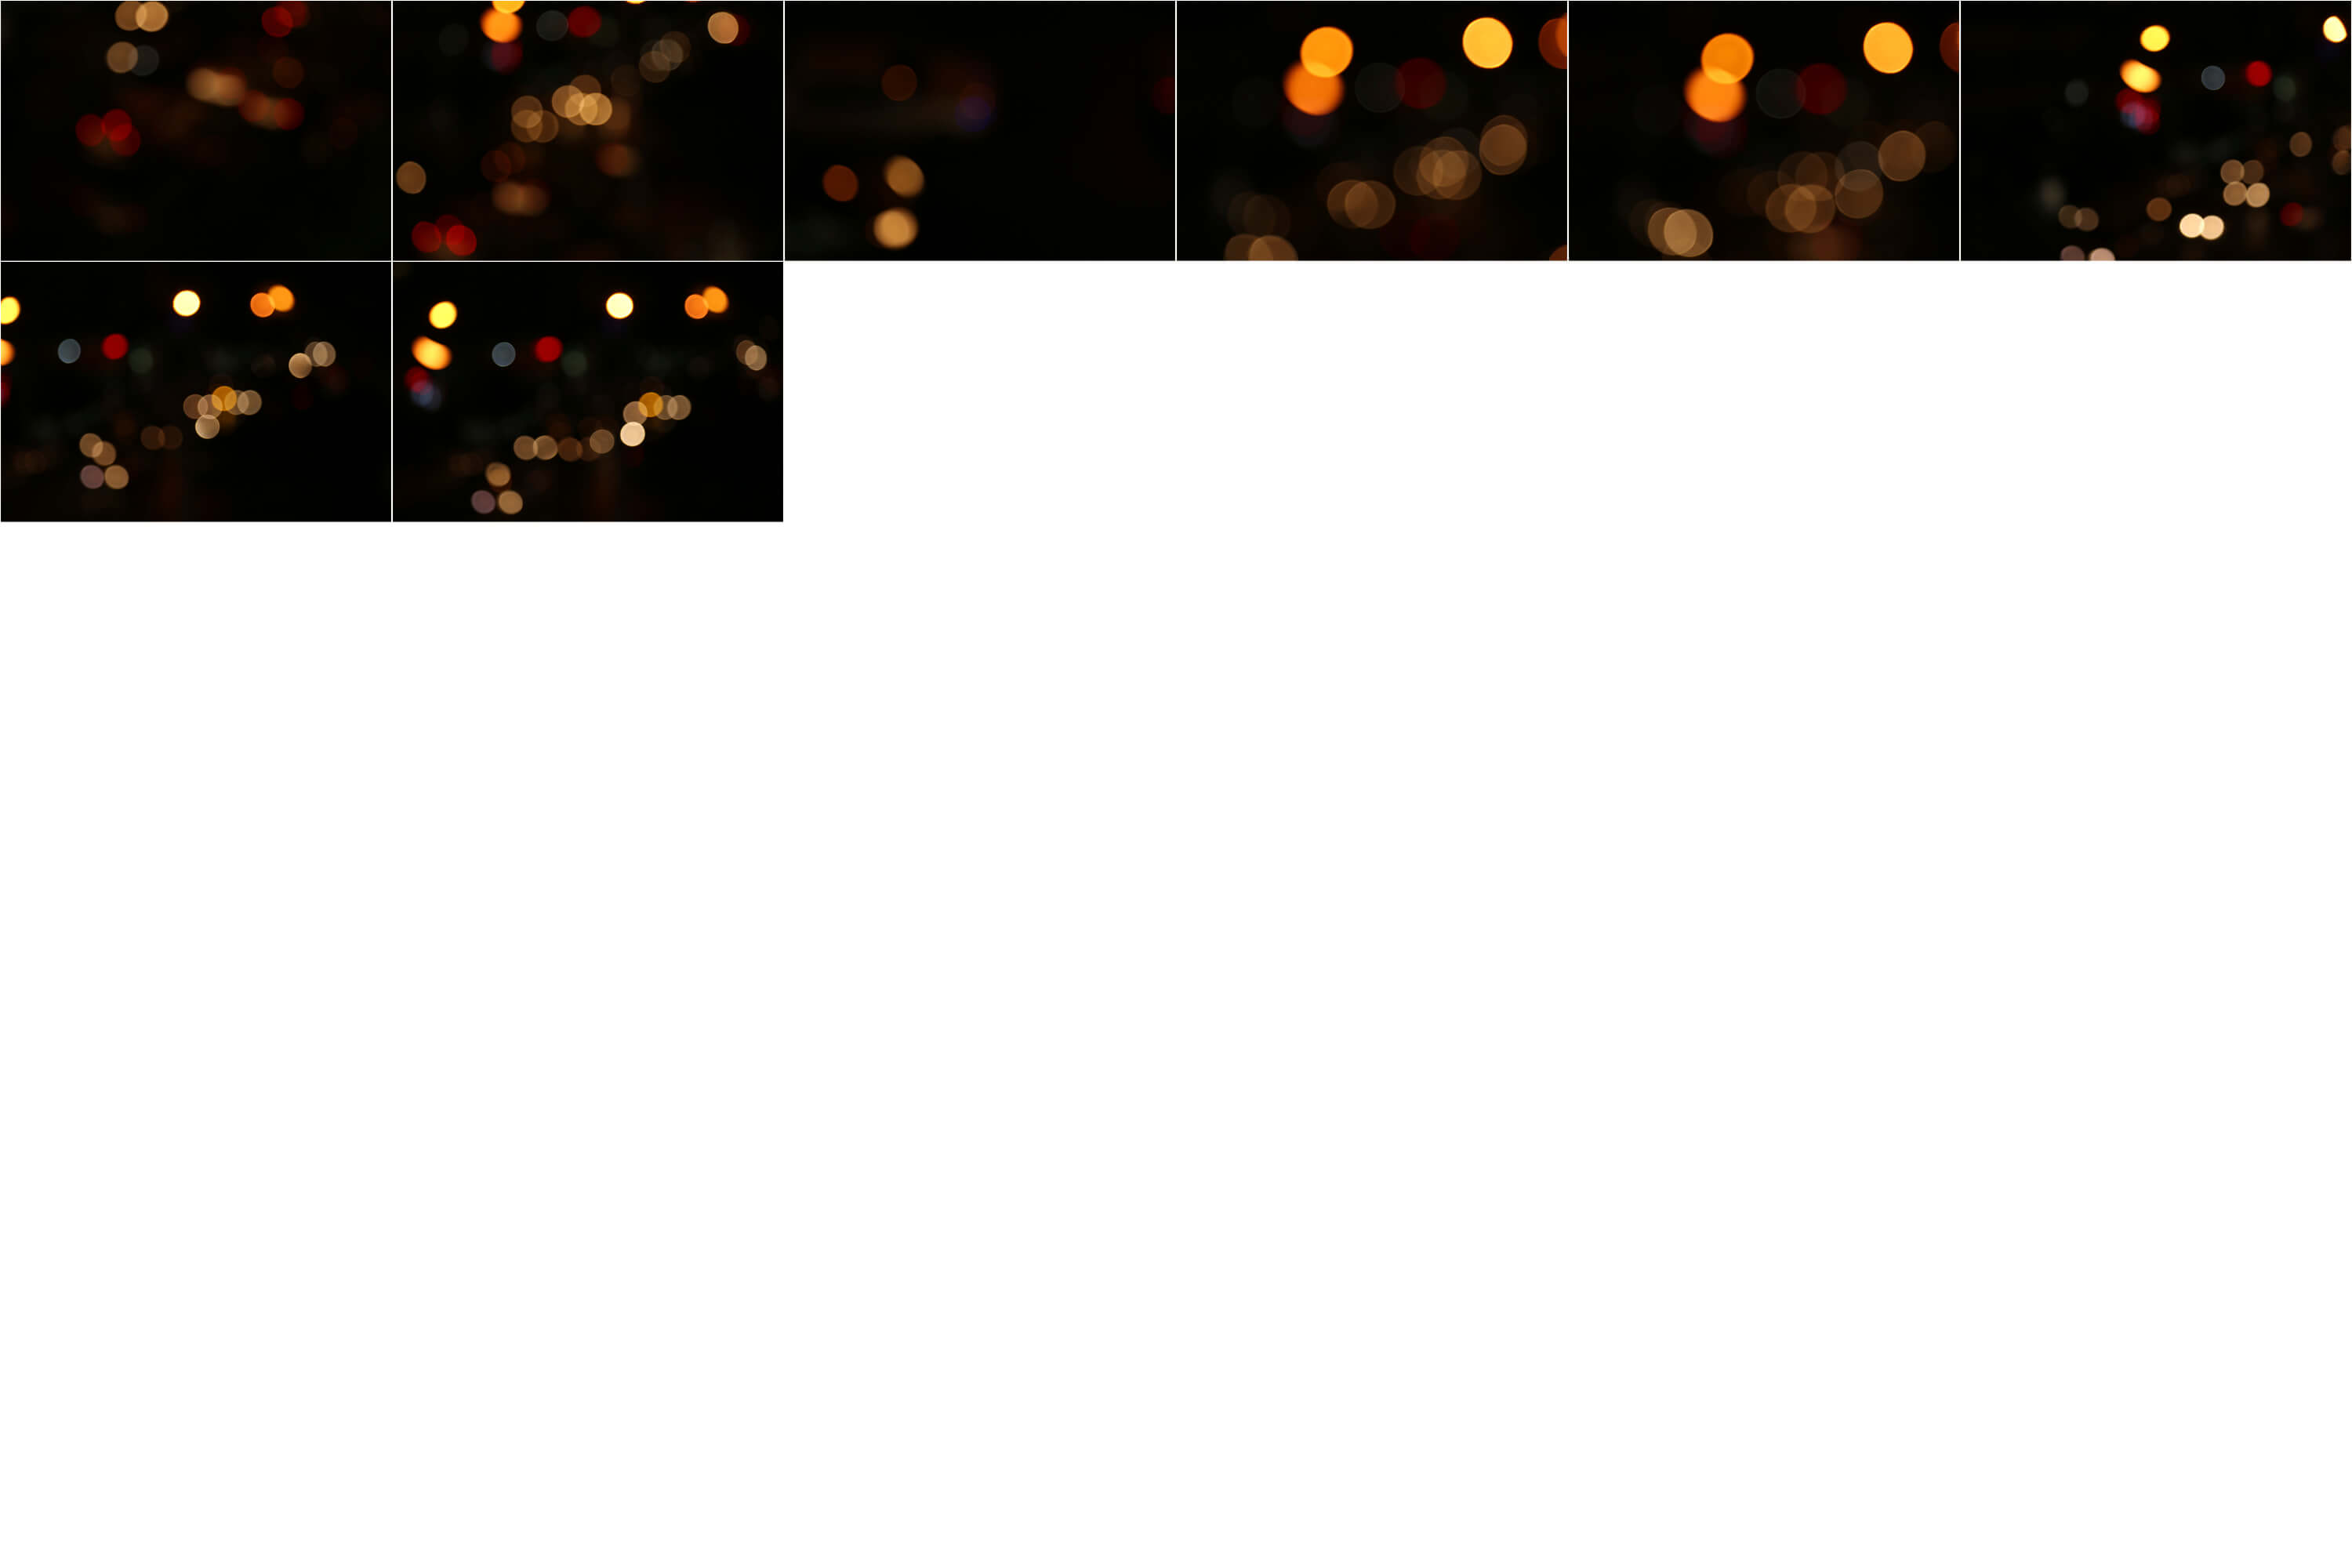 80 Life Style Bokeh Pack 02 lights Effect Photo Overlays example image 10